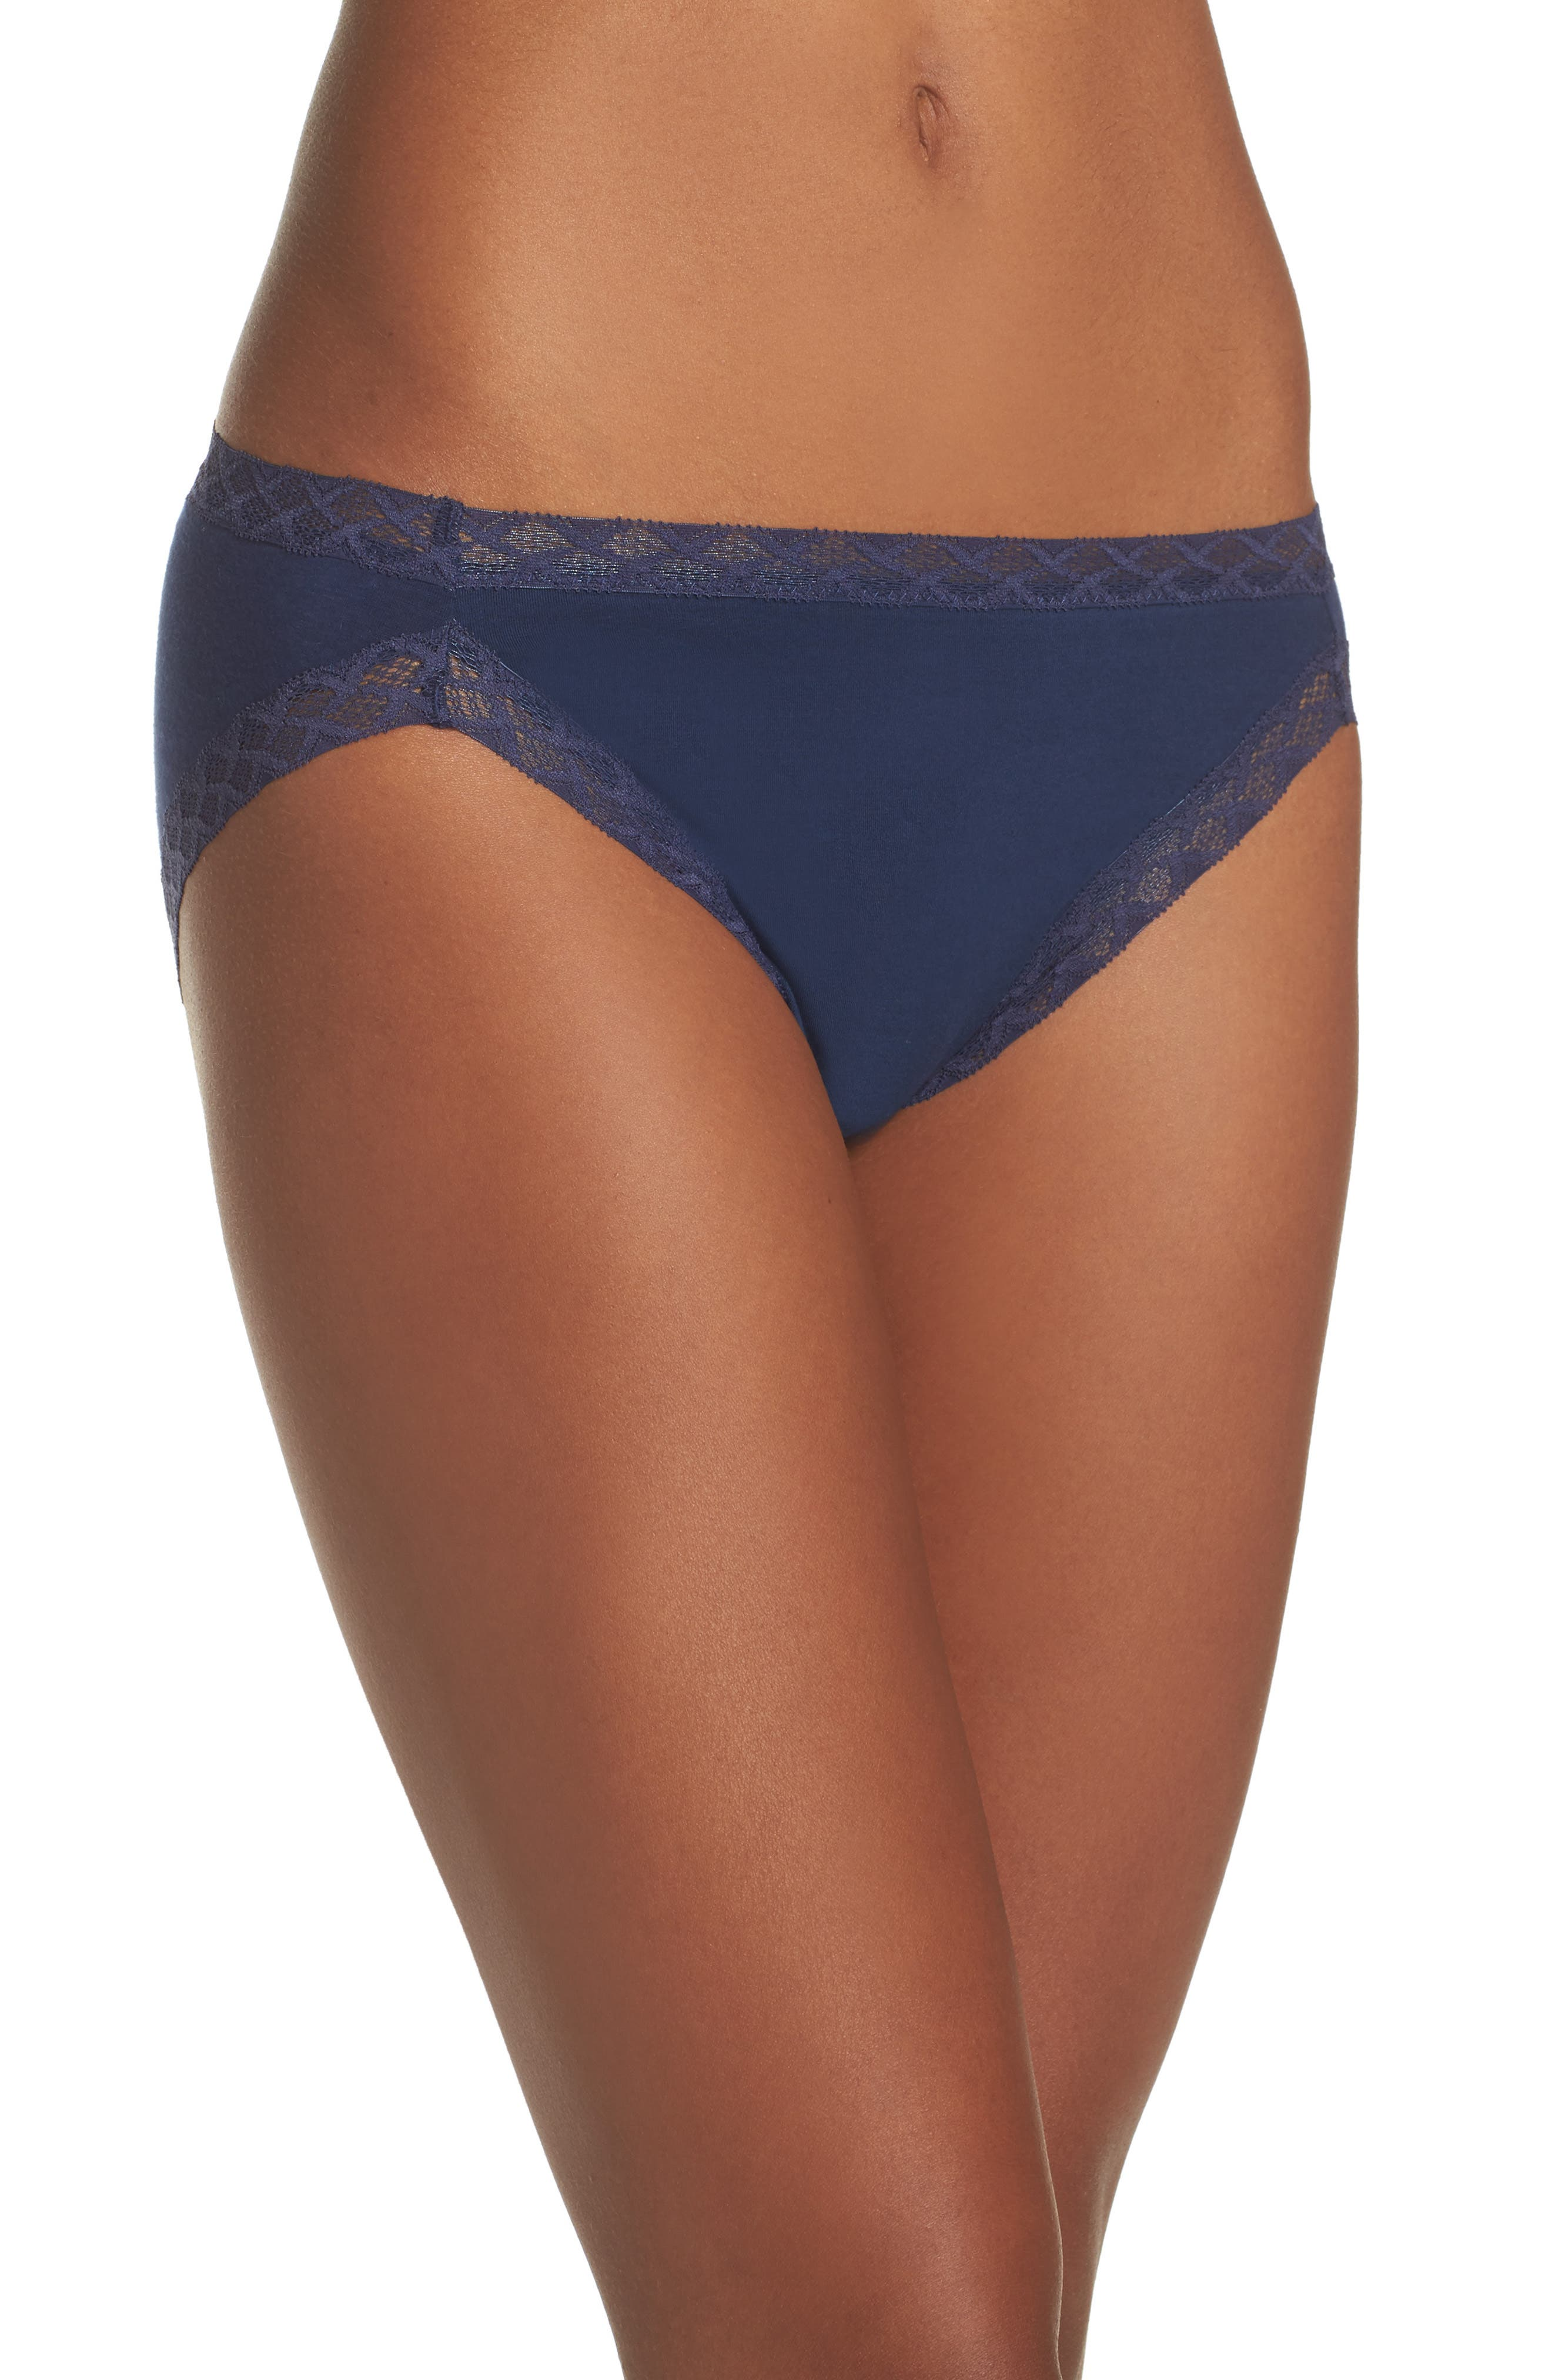 Bliss French Cut Briefs,                             Main thumbnail 1, color,                             NIGHT